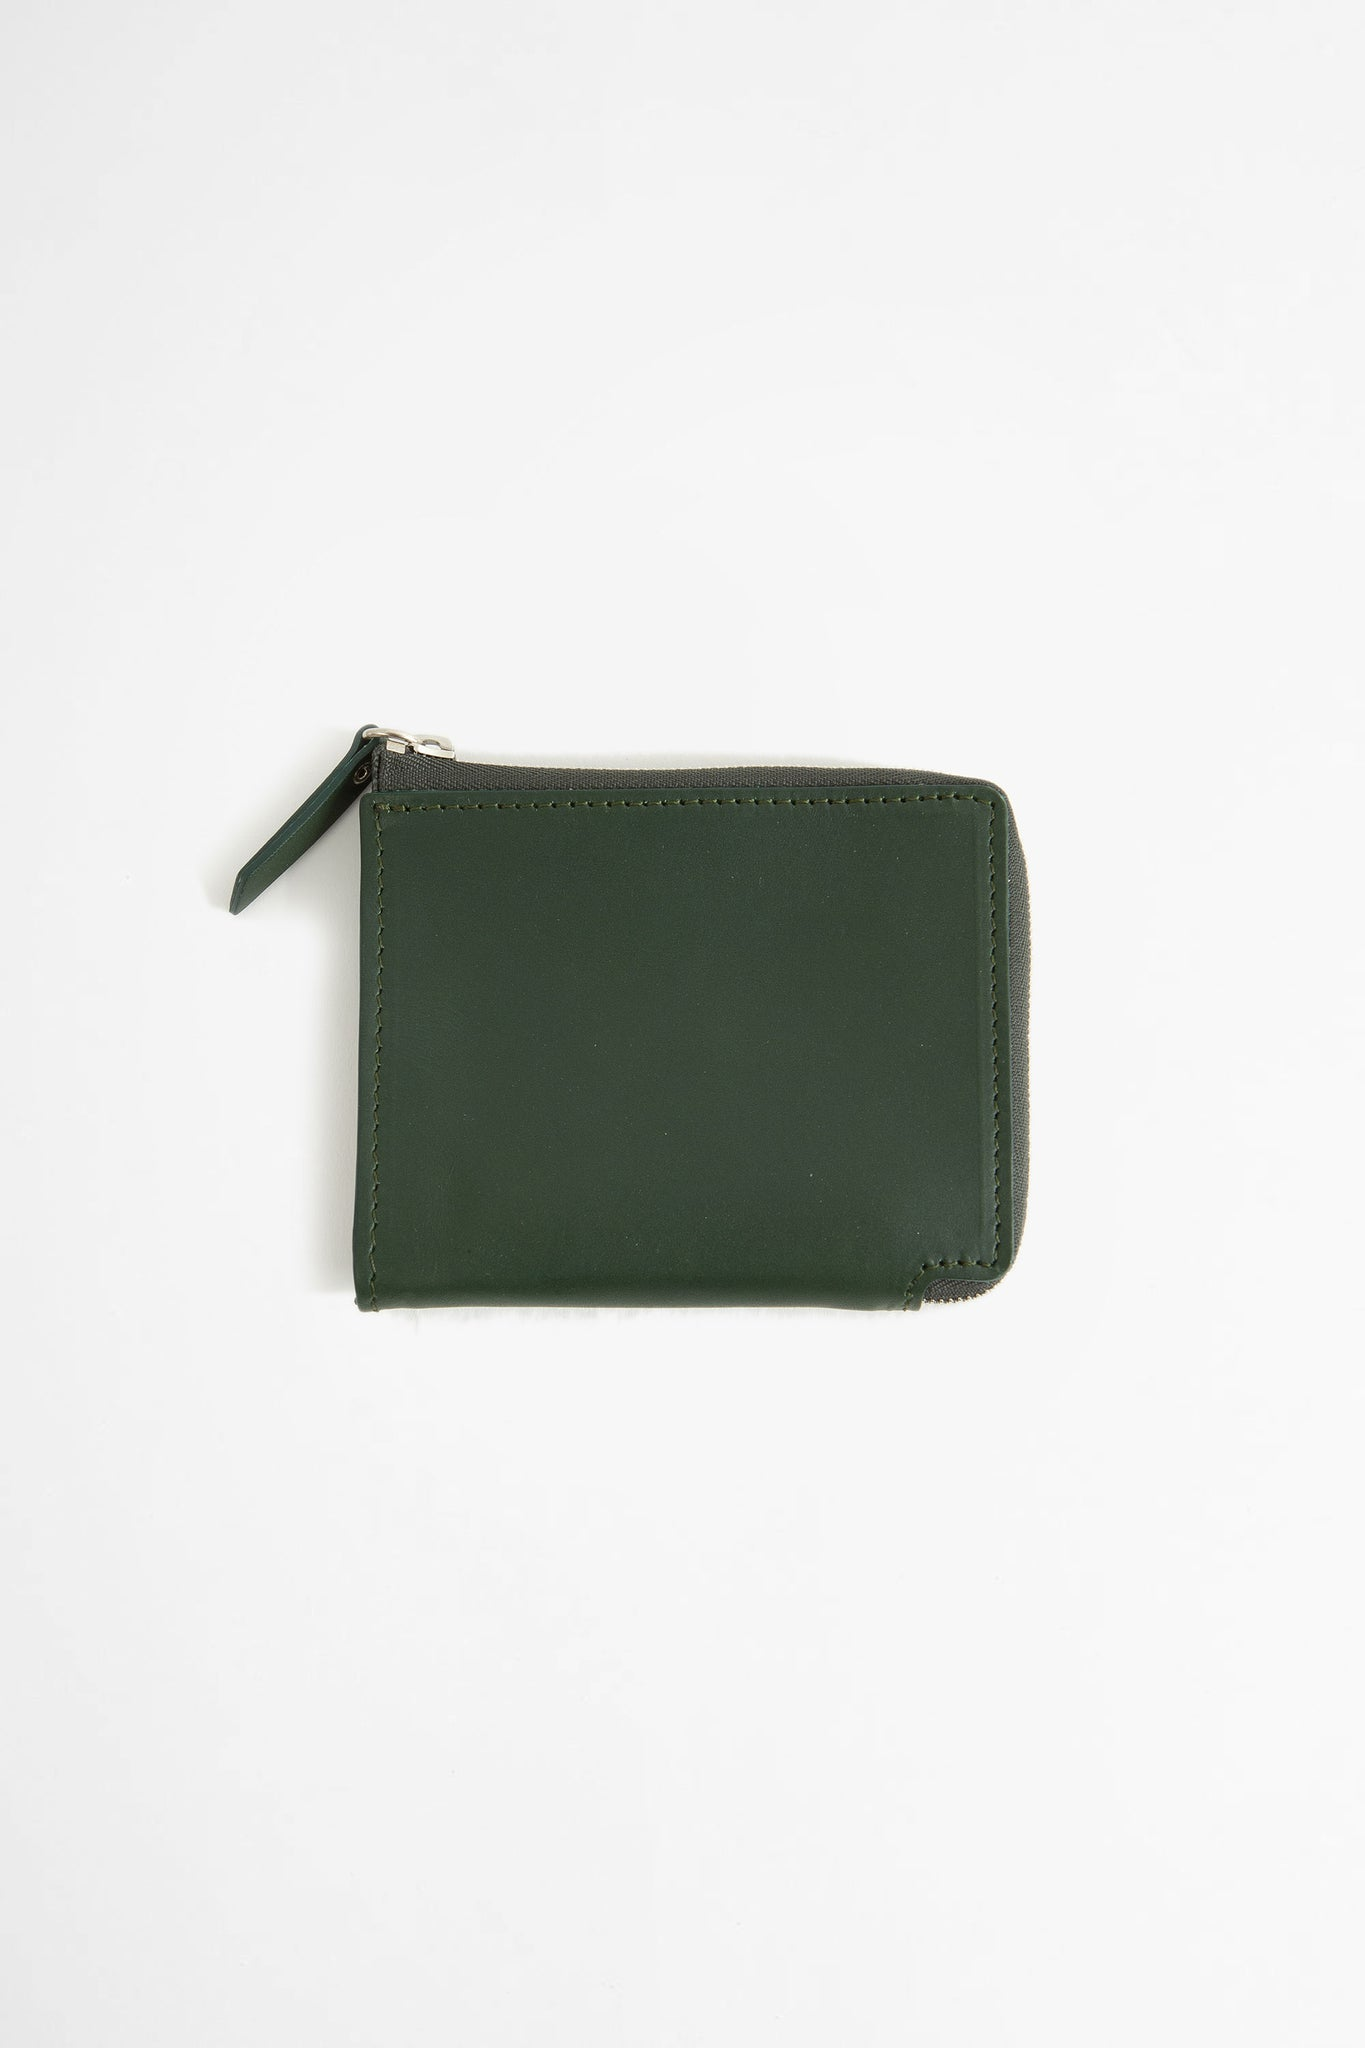 Zip-around leather wallet green